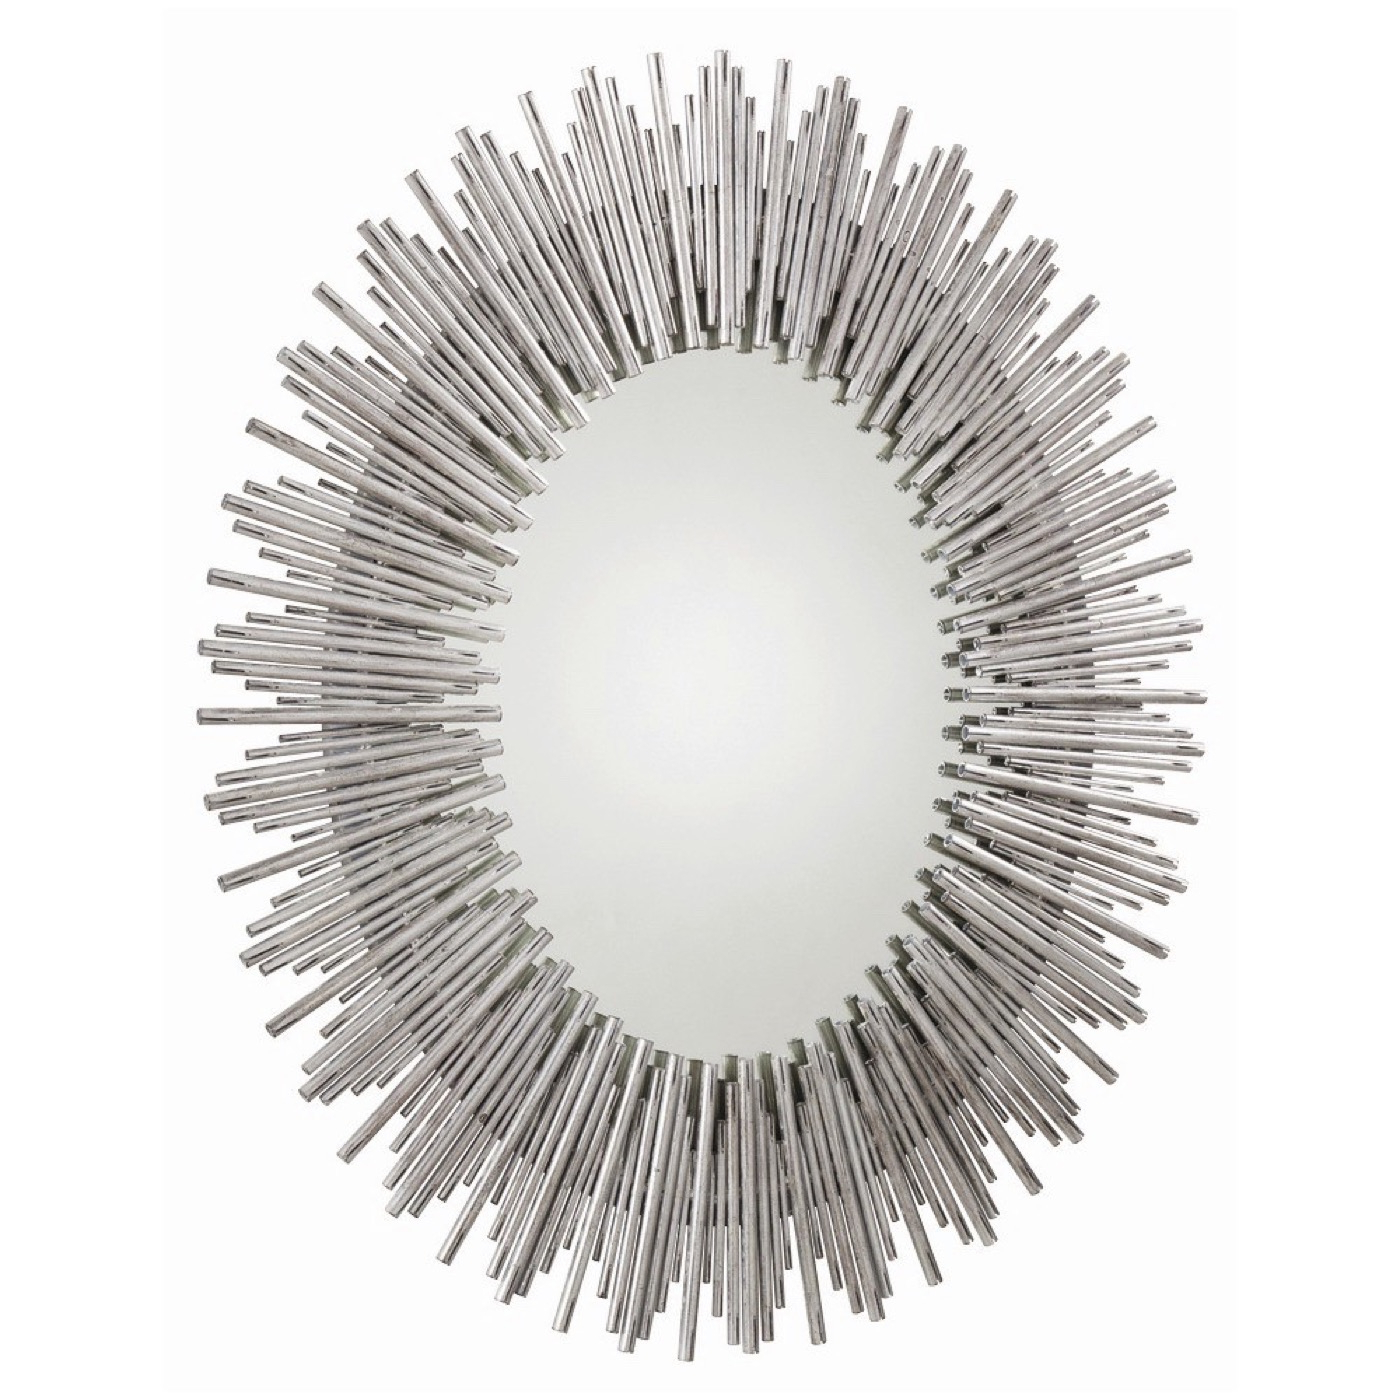 Kentwood Round Wall Mirrors Pertaining To Most Current Kentwood Oval Wall Mirror (Gallery 13 of 20)